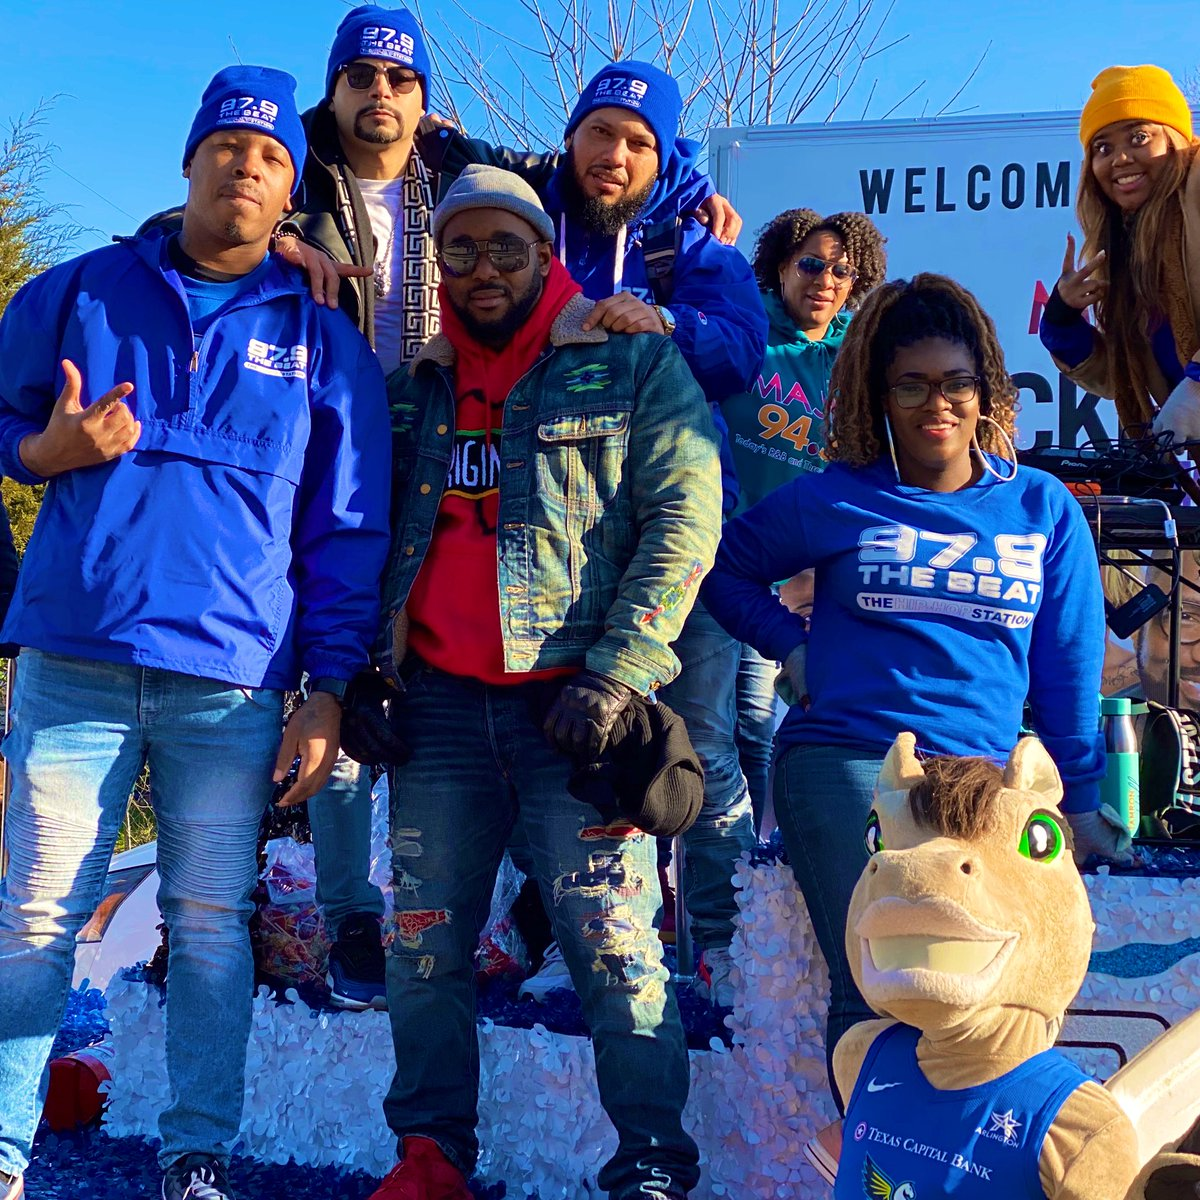 ☀️ Couldn't have asked for a better day at #MLKDayParadeDallas ☀️